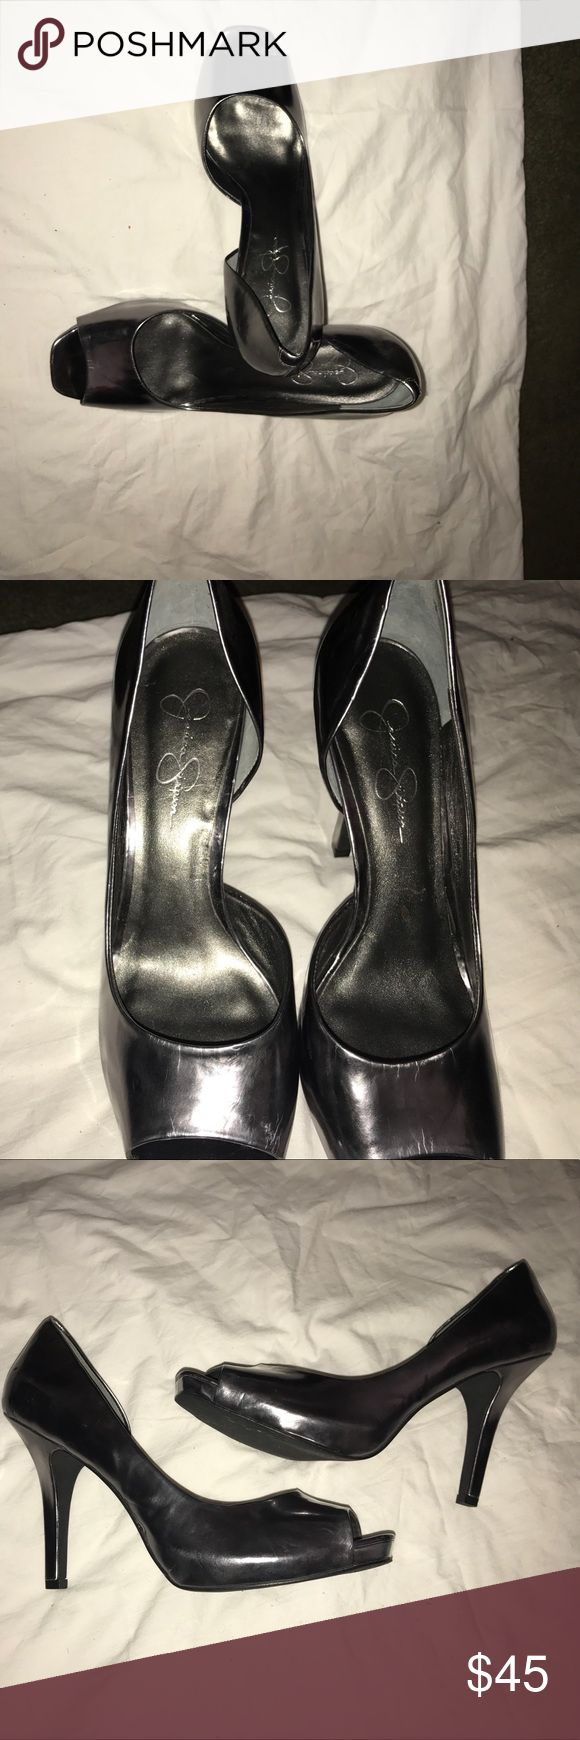 Sexy Jessica Simpson heels! Jessica Simpson 3 1/2 inch shoes very good and comfortable Jessica Simpson Shoes Heels